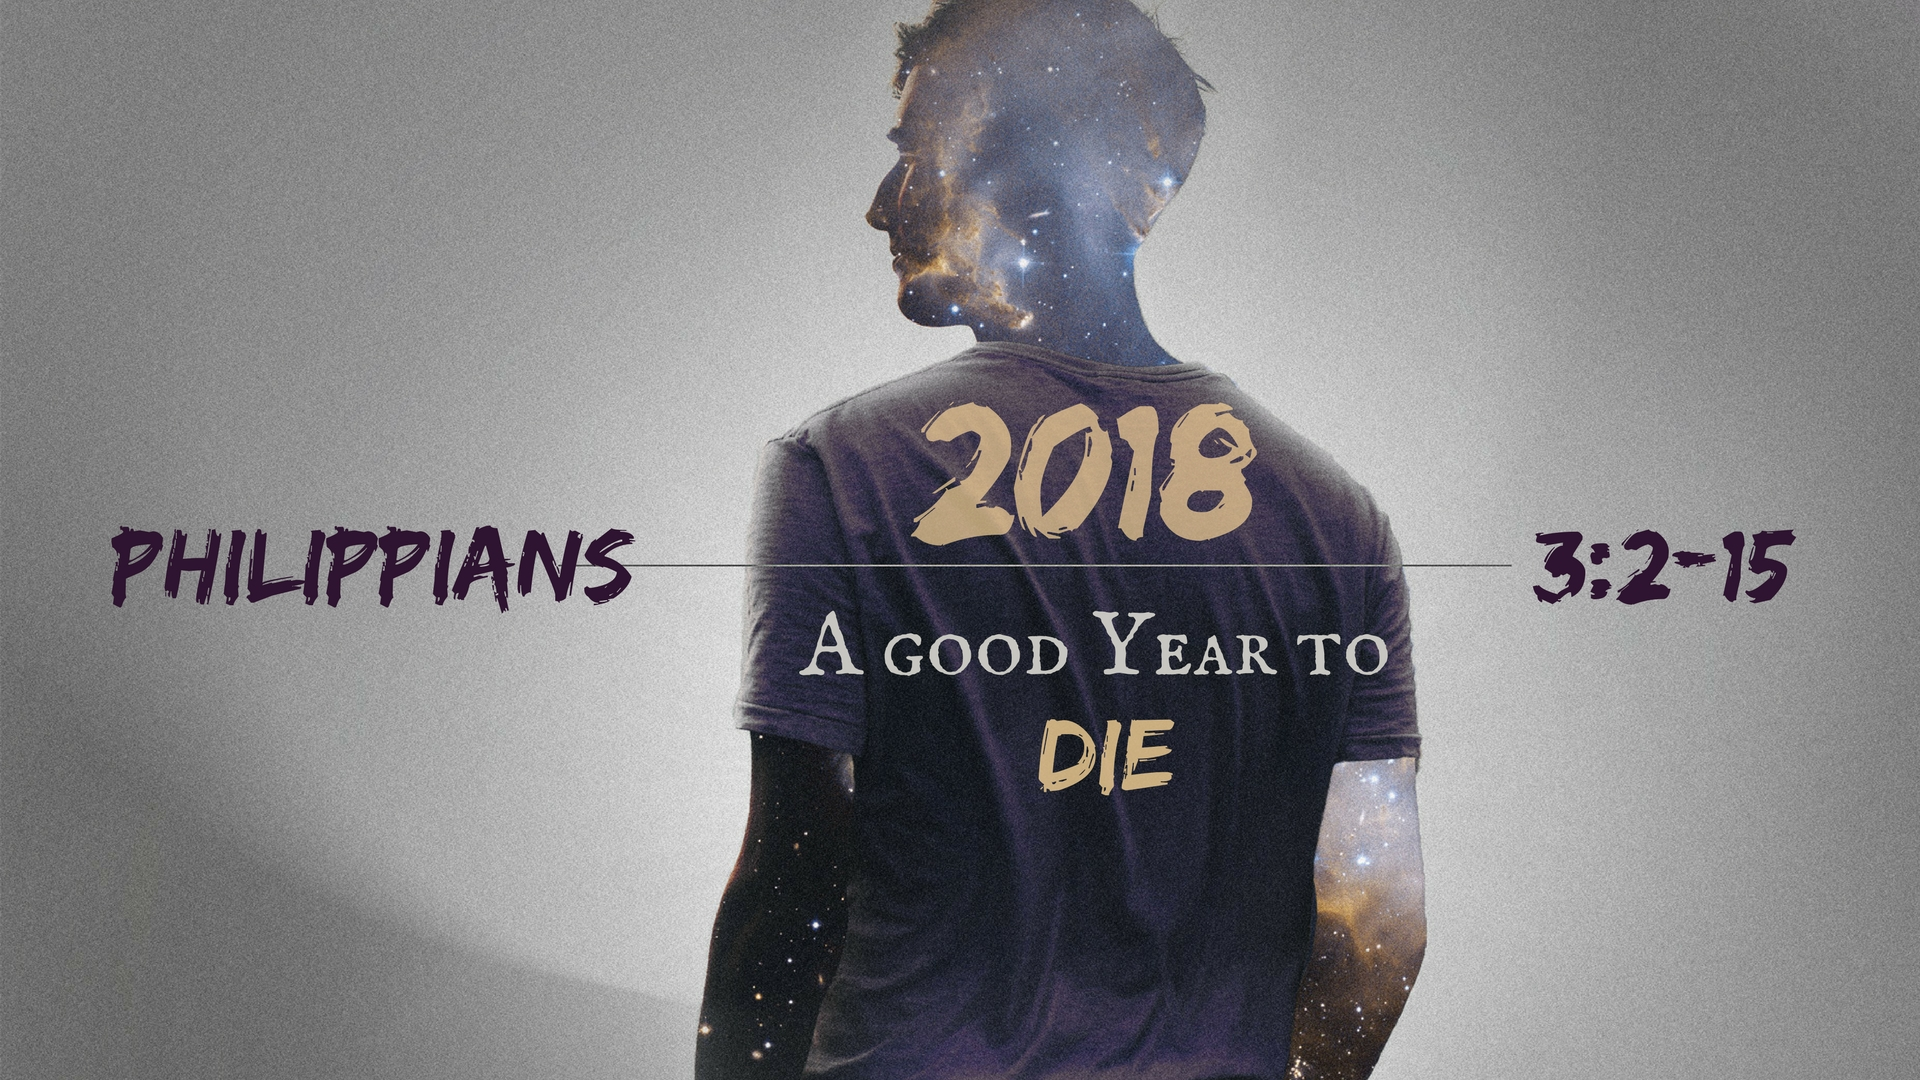 2018 – A Good Year to Die (12/31/17)